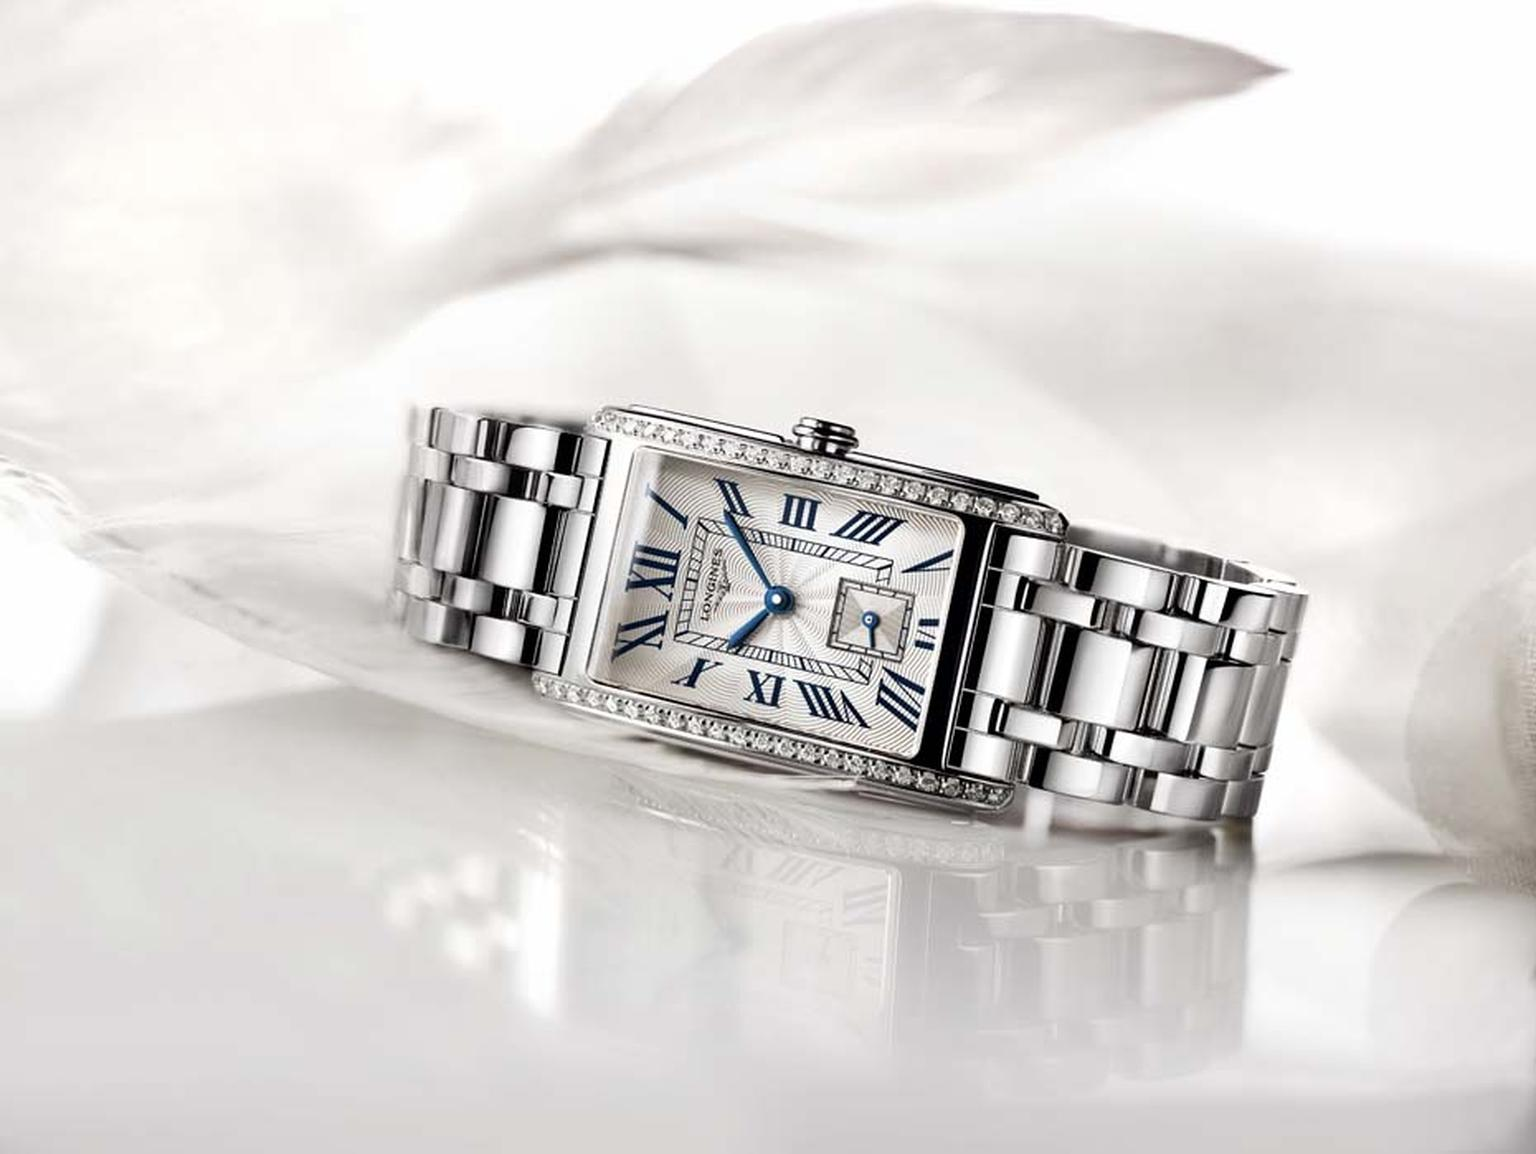 Mothers Day Watches US_Longines_Dolce Vita stainless steel watch with diamonds side.jpg